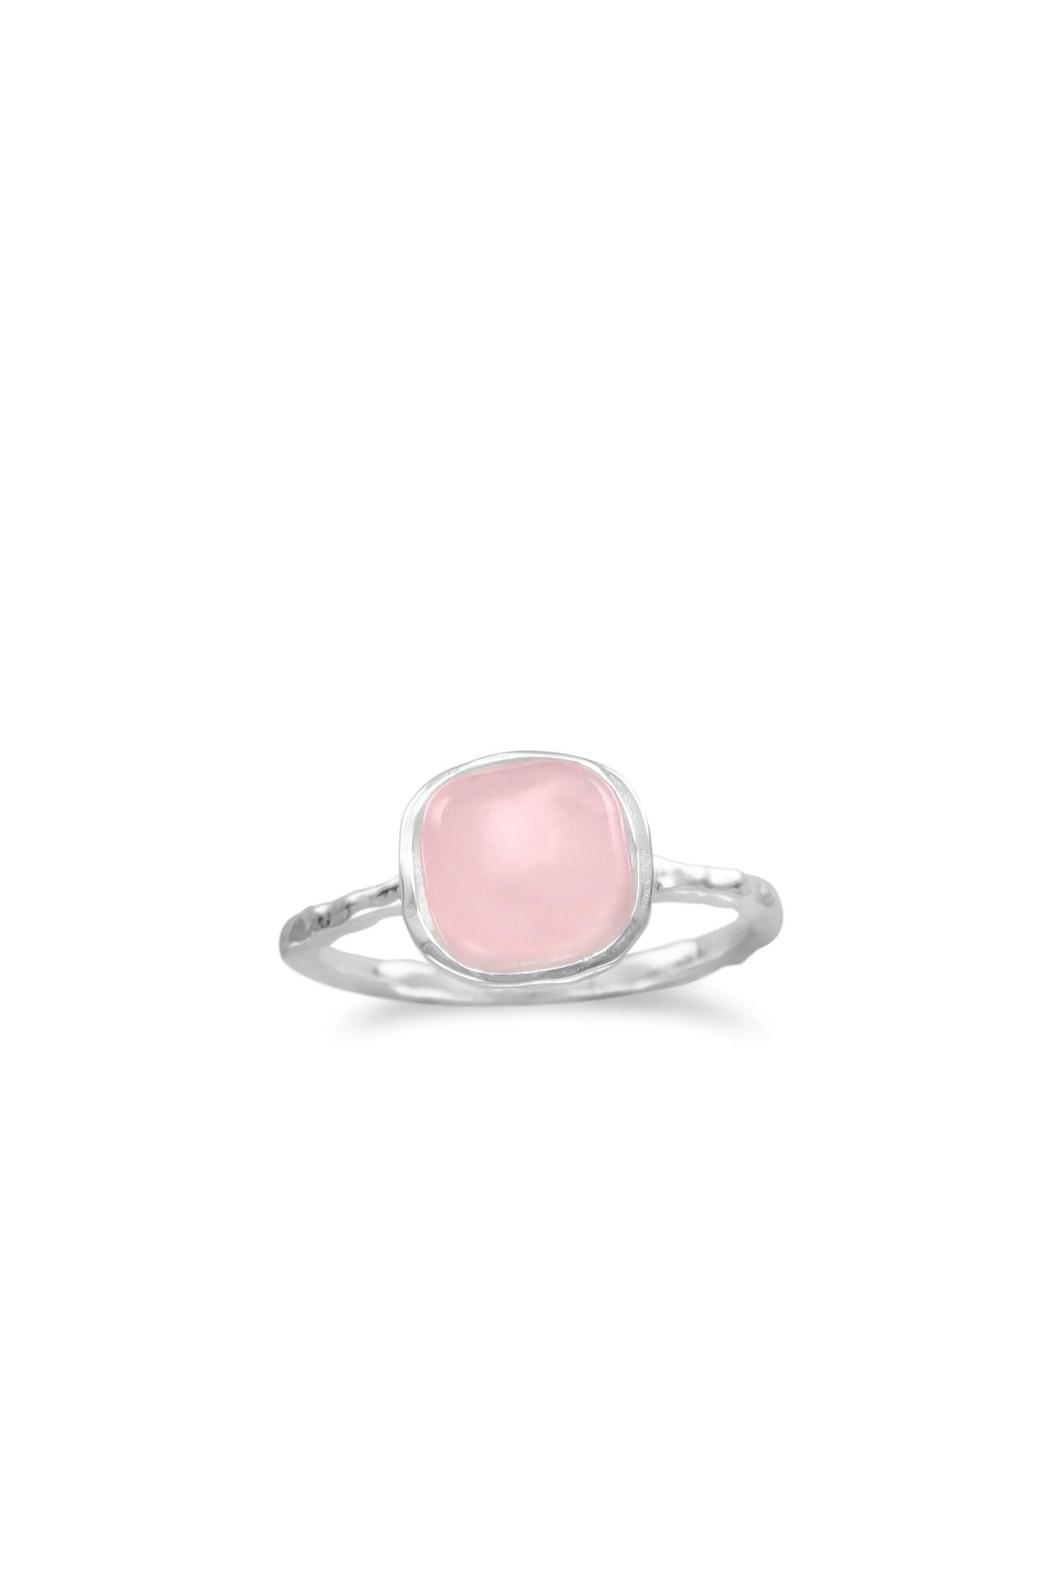 Wild Lilies Jewelry  Rose Quartz Ring - Main Image